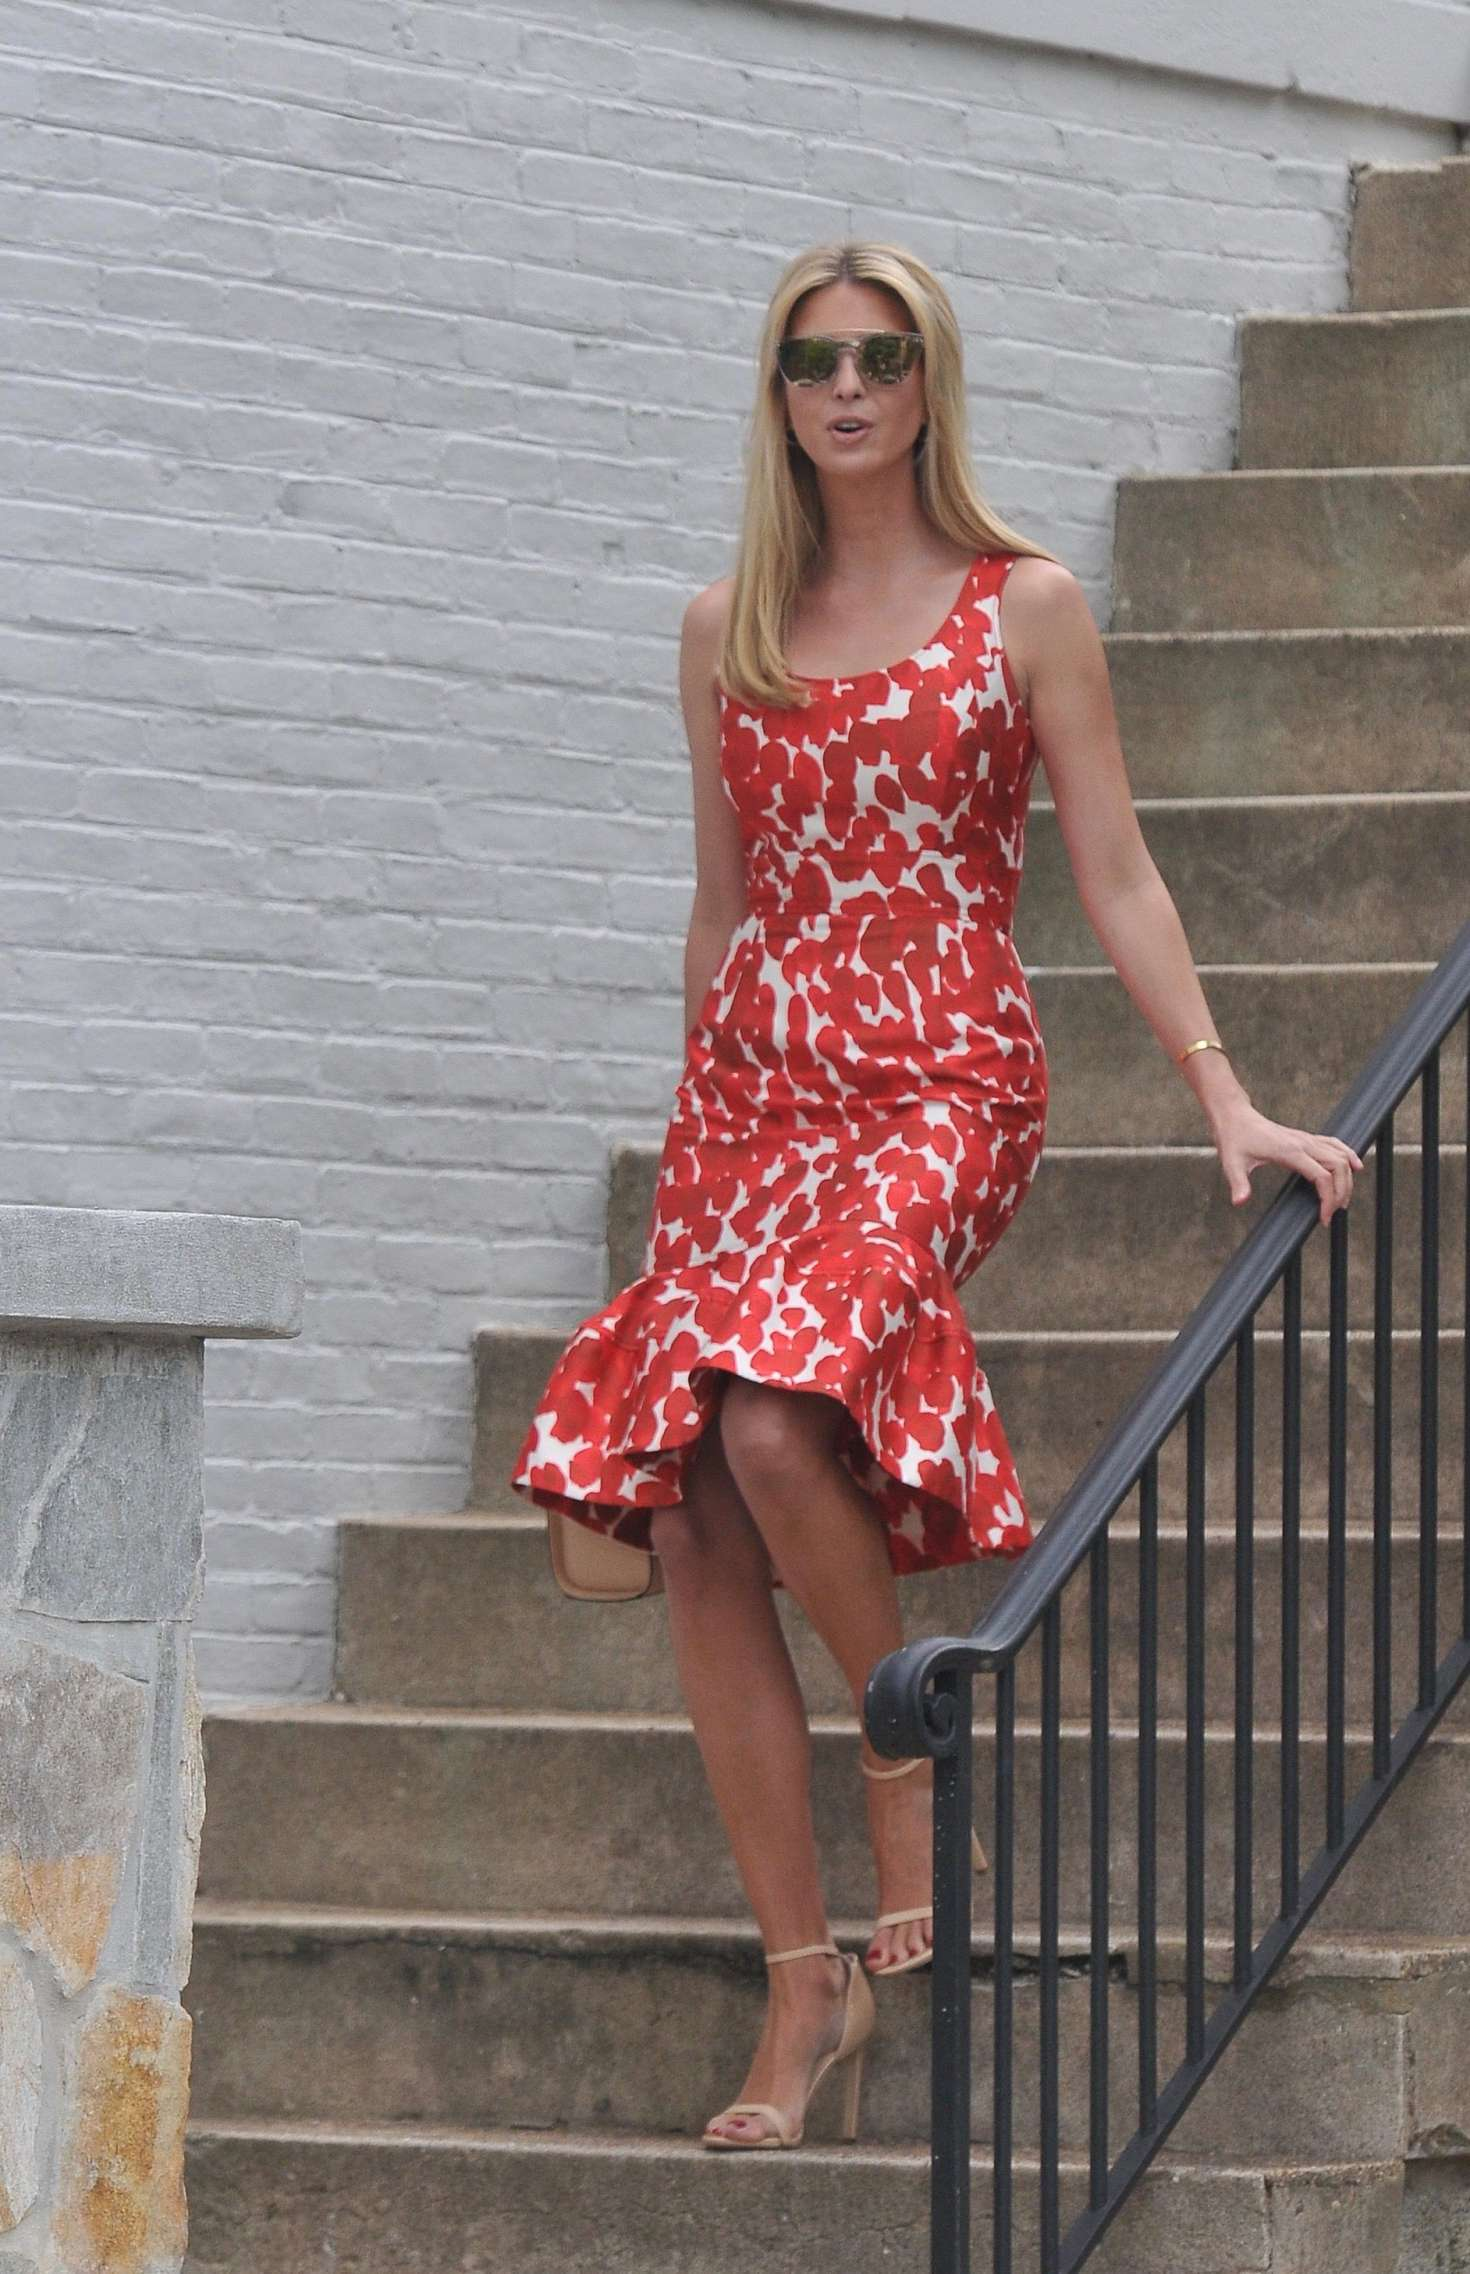 Ivanka Trump in Red Dress out for work in Washington